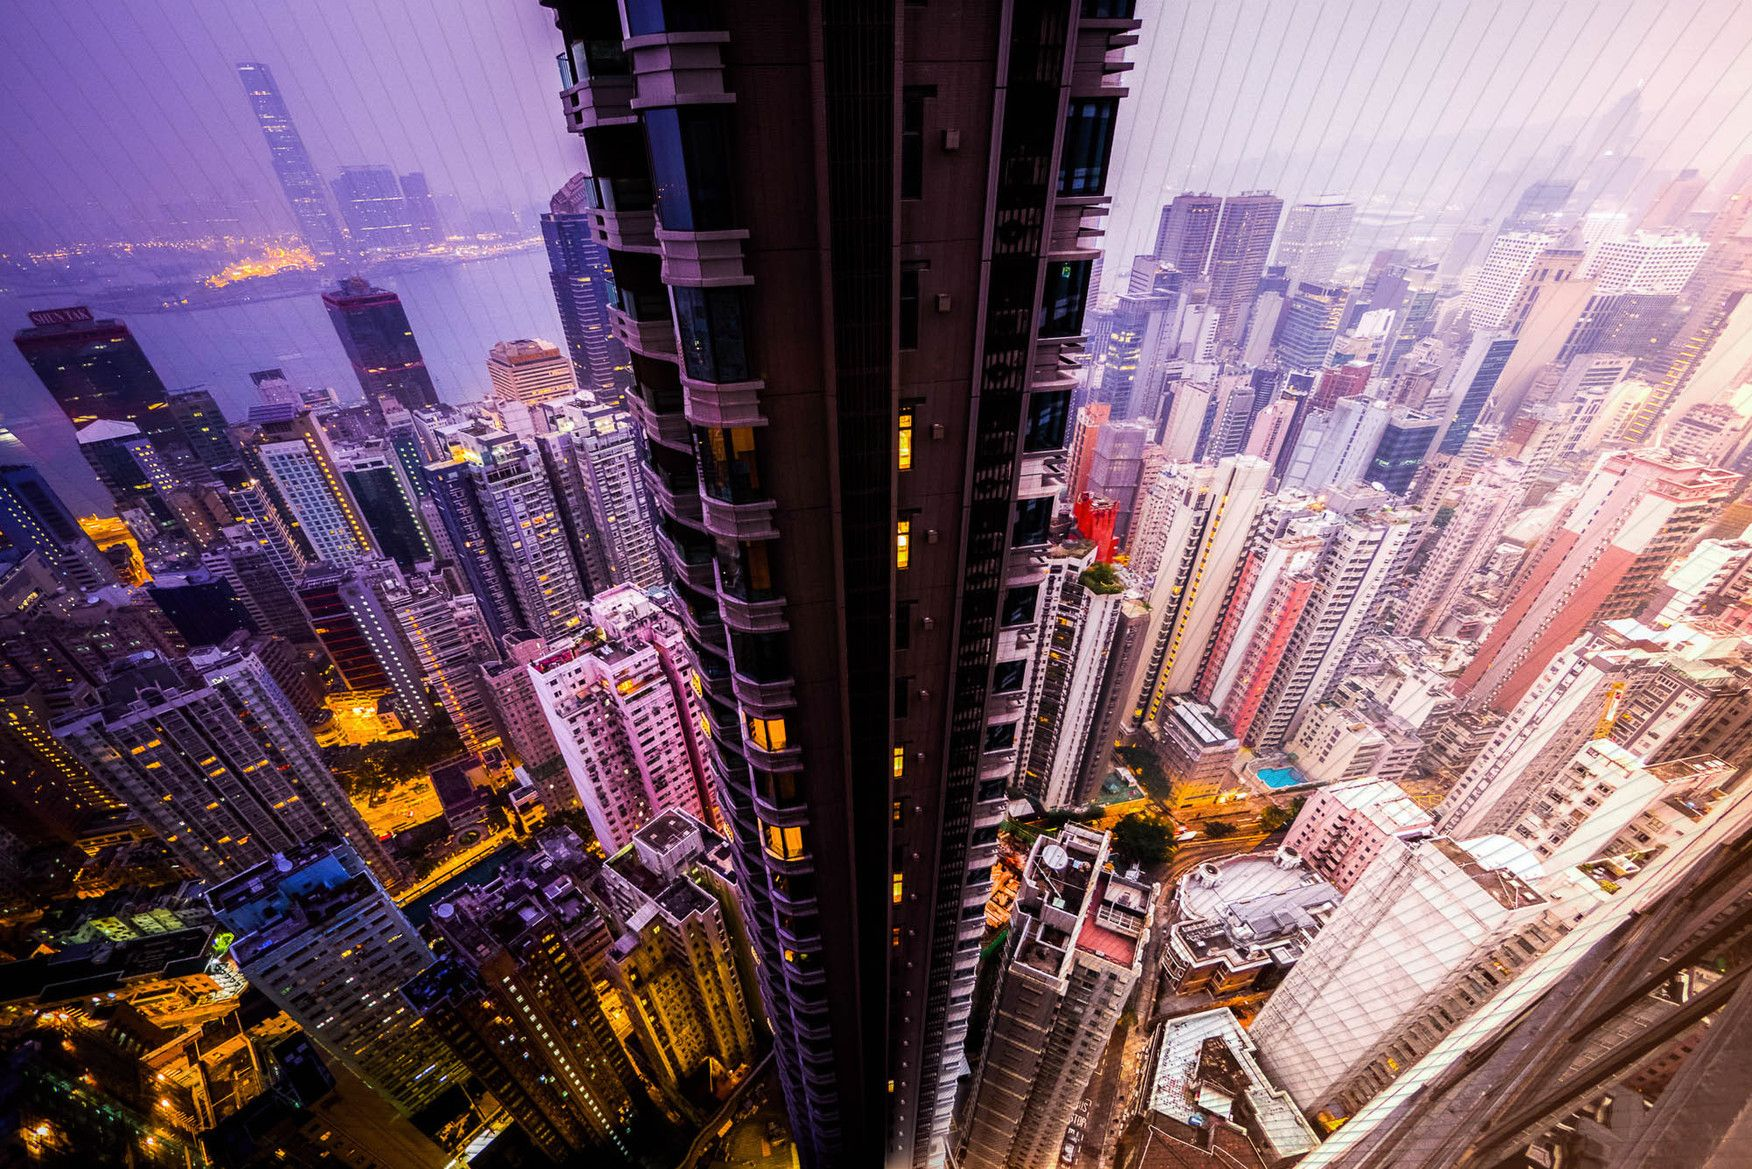 Hong Kong in 150 photos over 56 minutes. Time Slice by Dan Marker-Moore (@danorst)